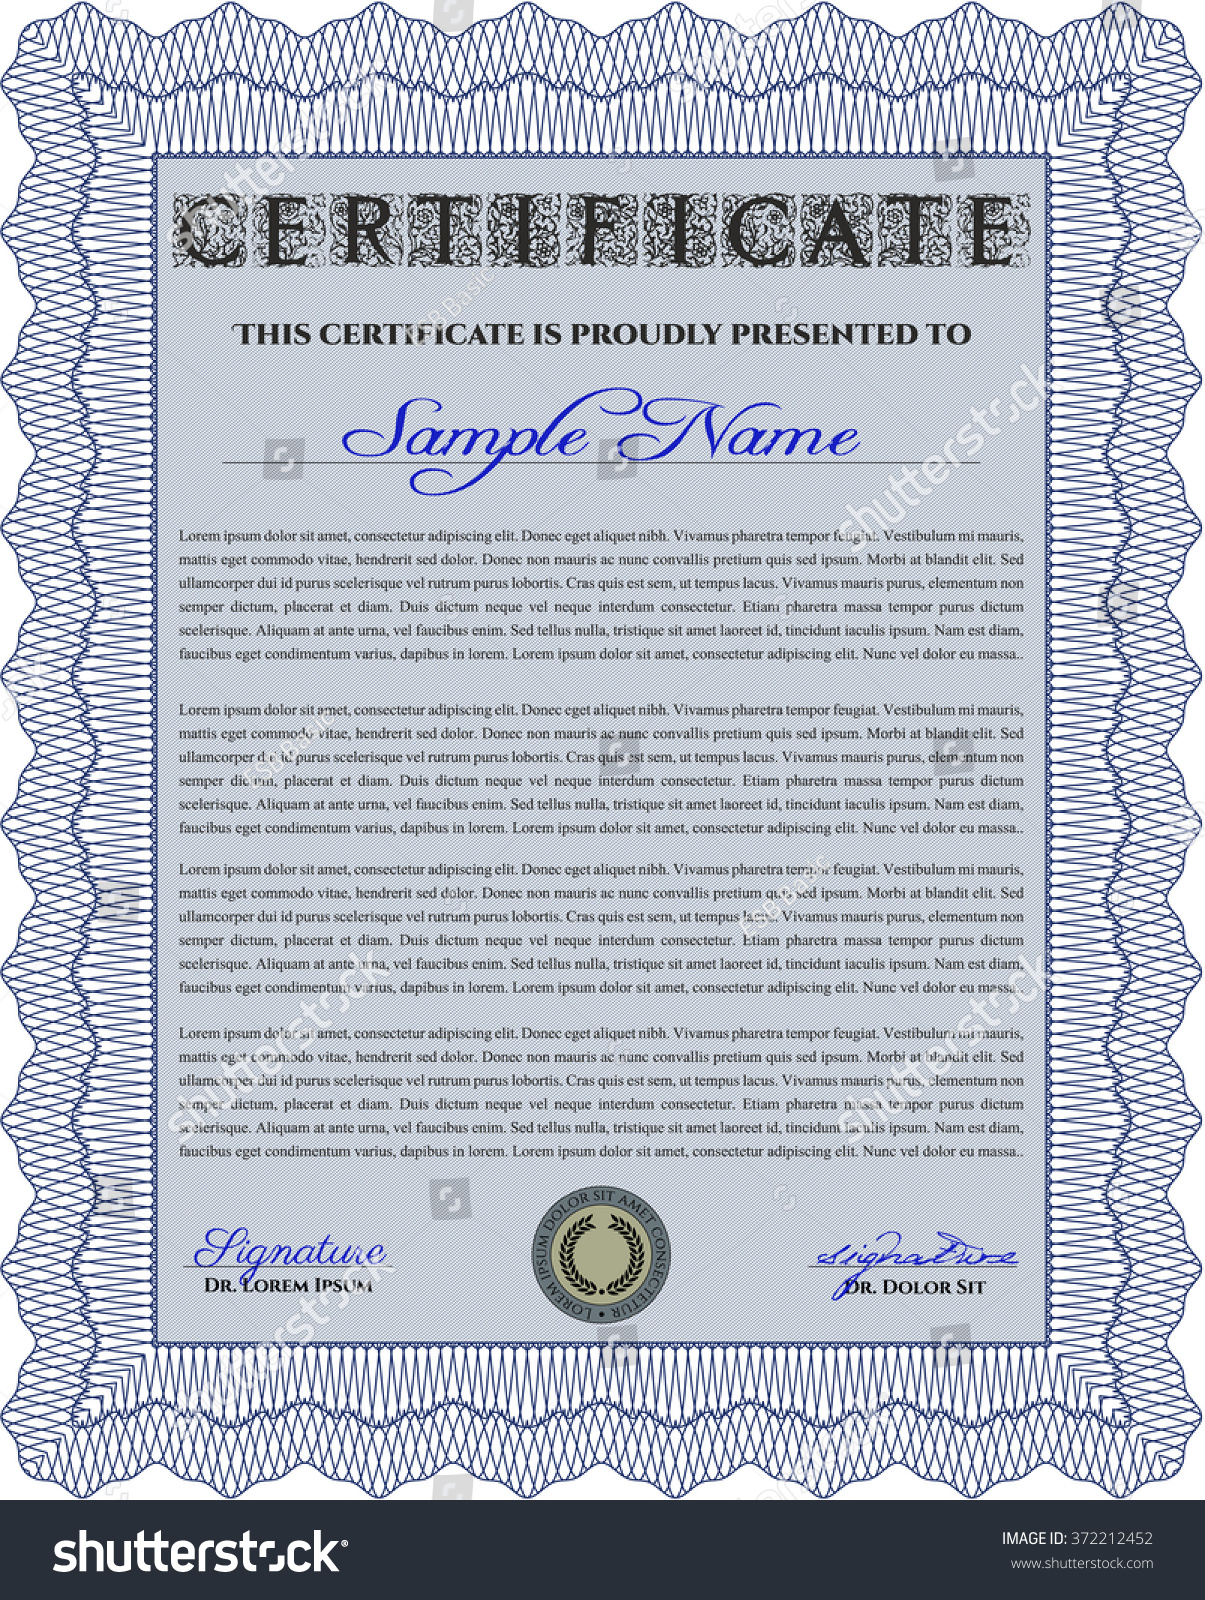 Certificate Achievement Template Diploma Completion Guilloche Stock ...